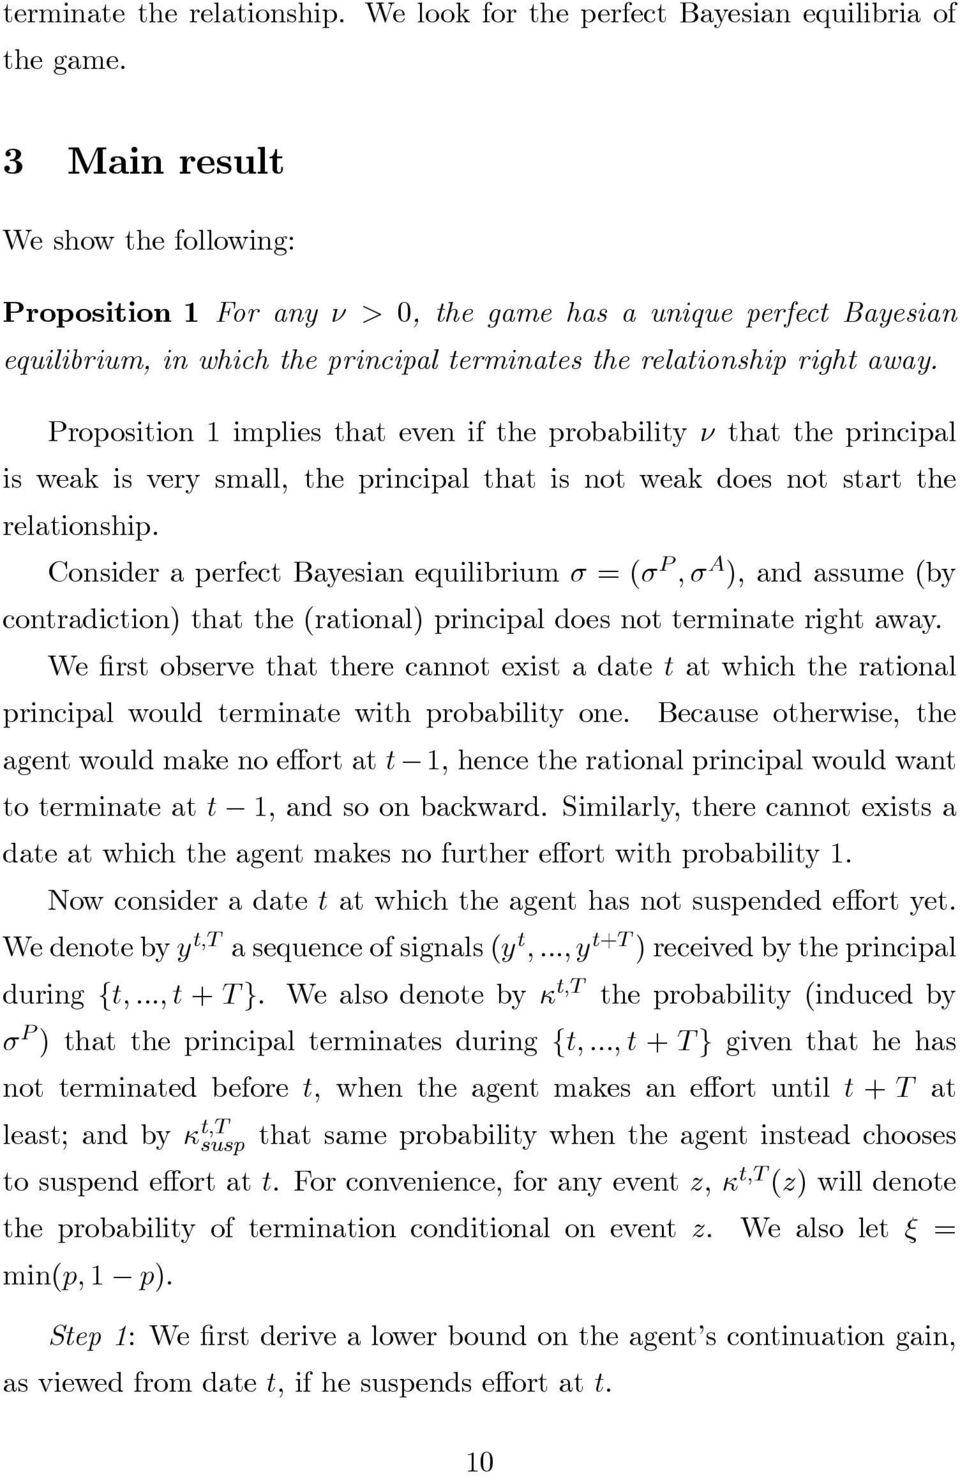 Proposition 1 implies that even if the probability ν that the principal is weak is very small, the principal that is not weak does not start the relationship.